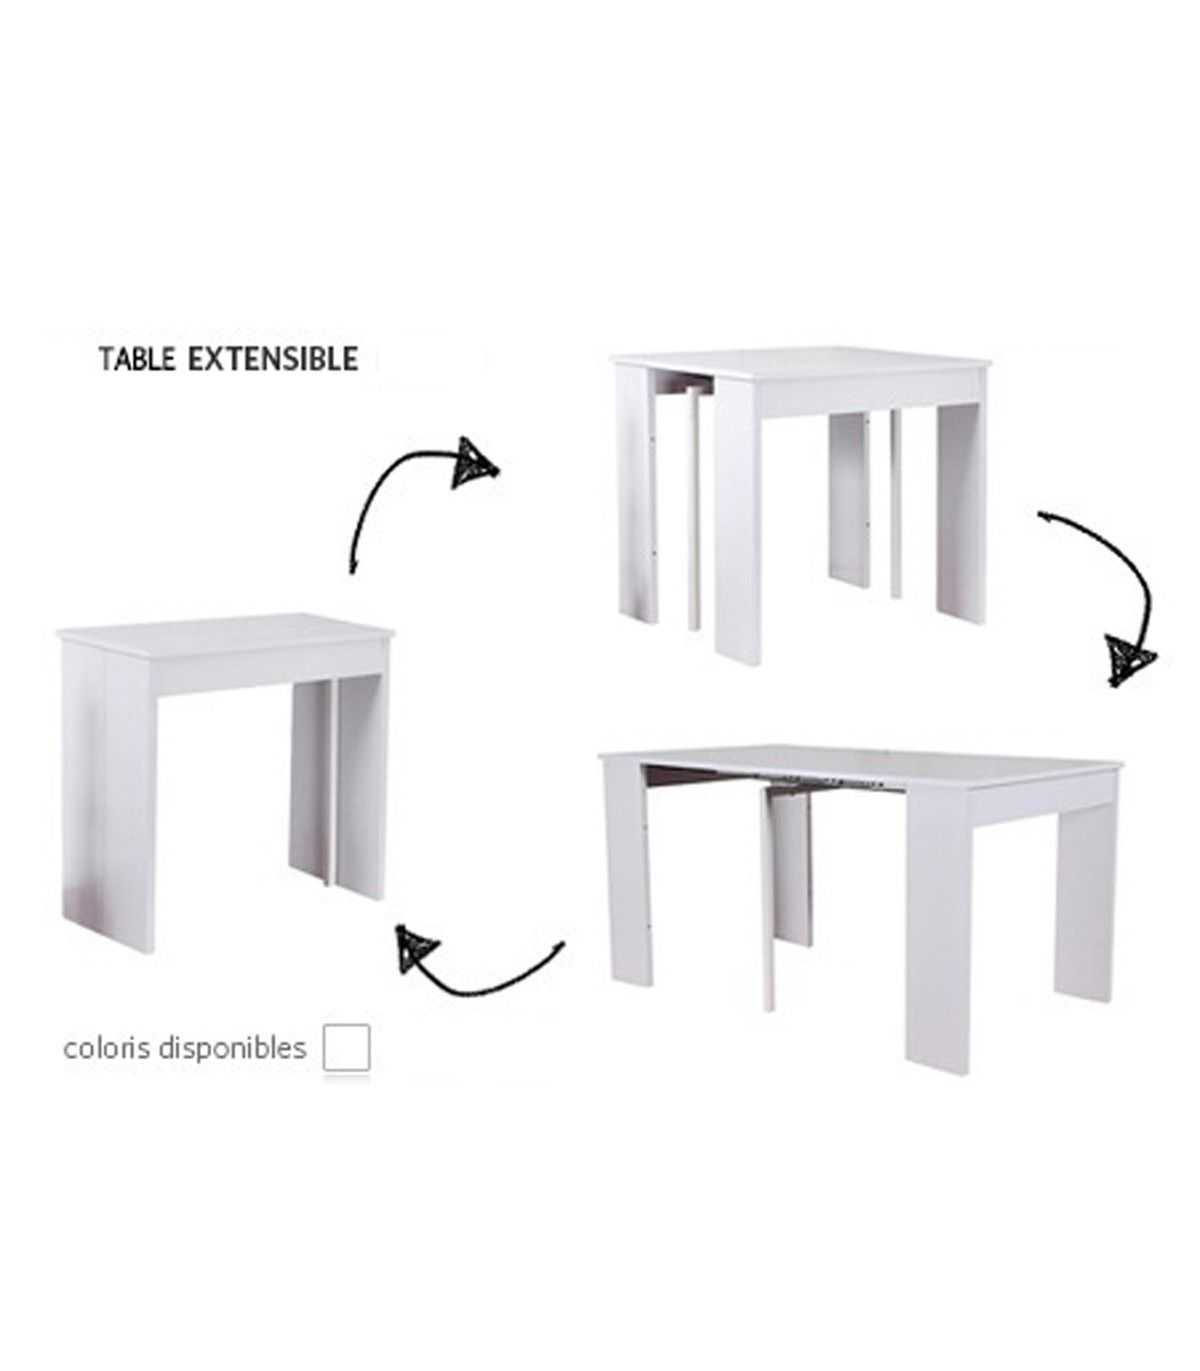 But Console Extensible Table Console Extensible Extenzi Baydesign Canada Home Pinterest